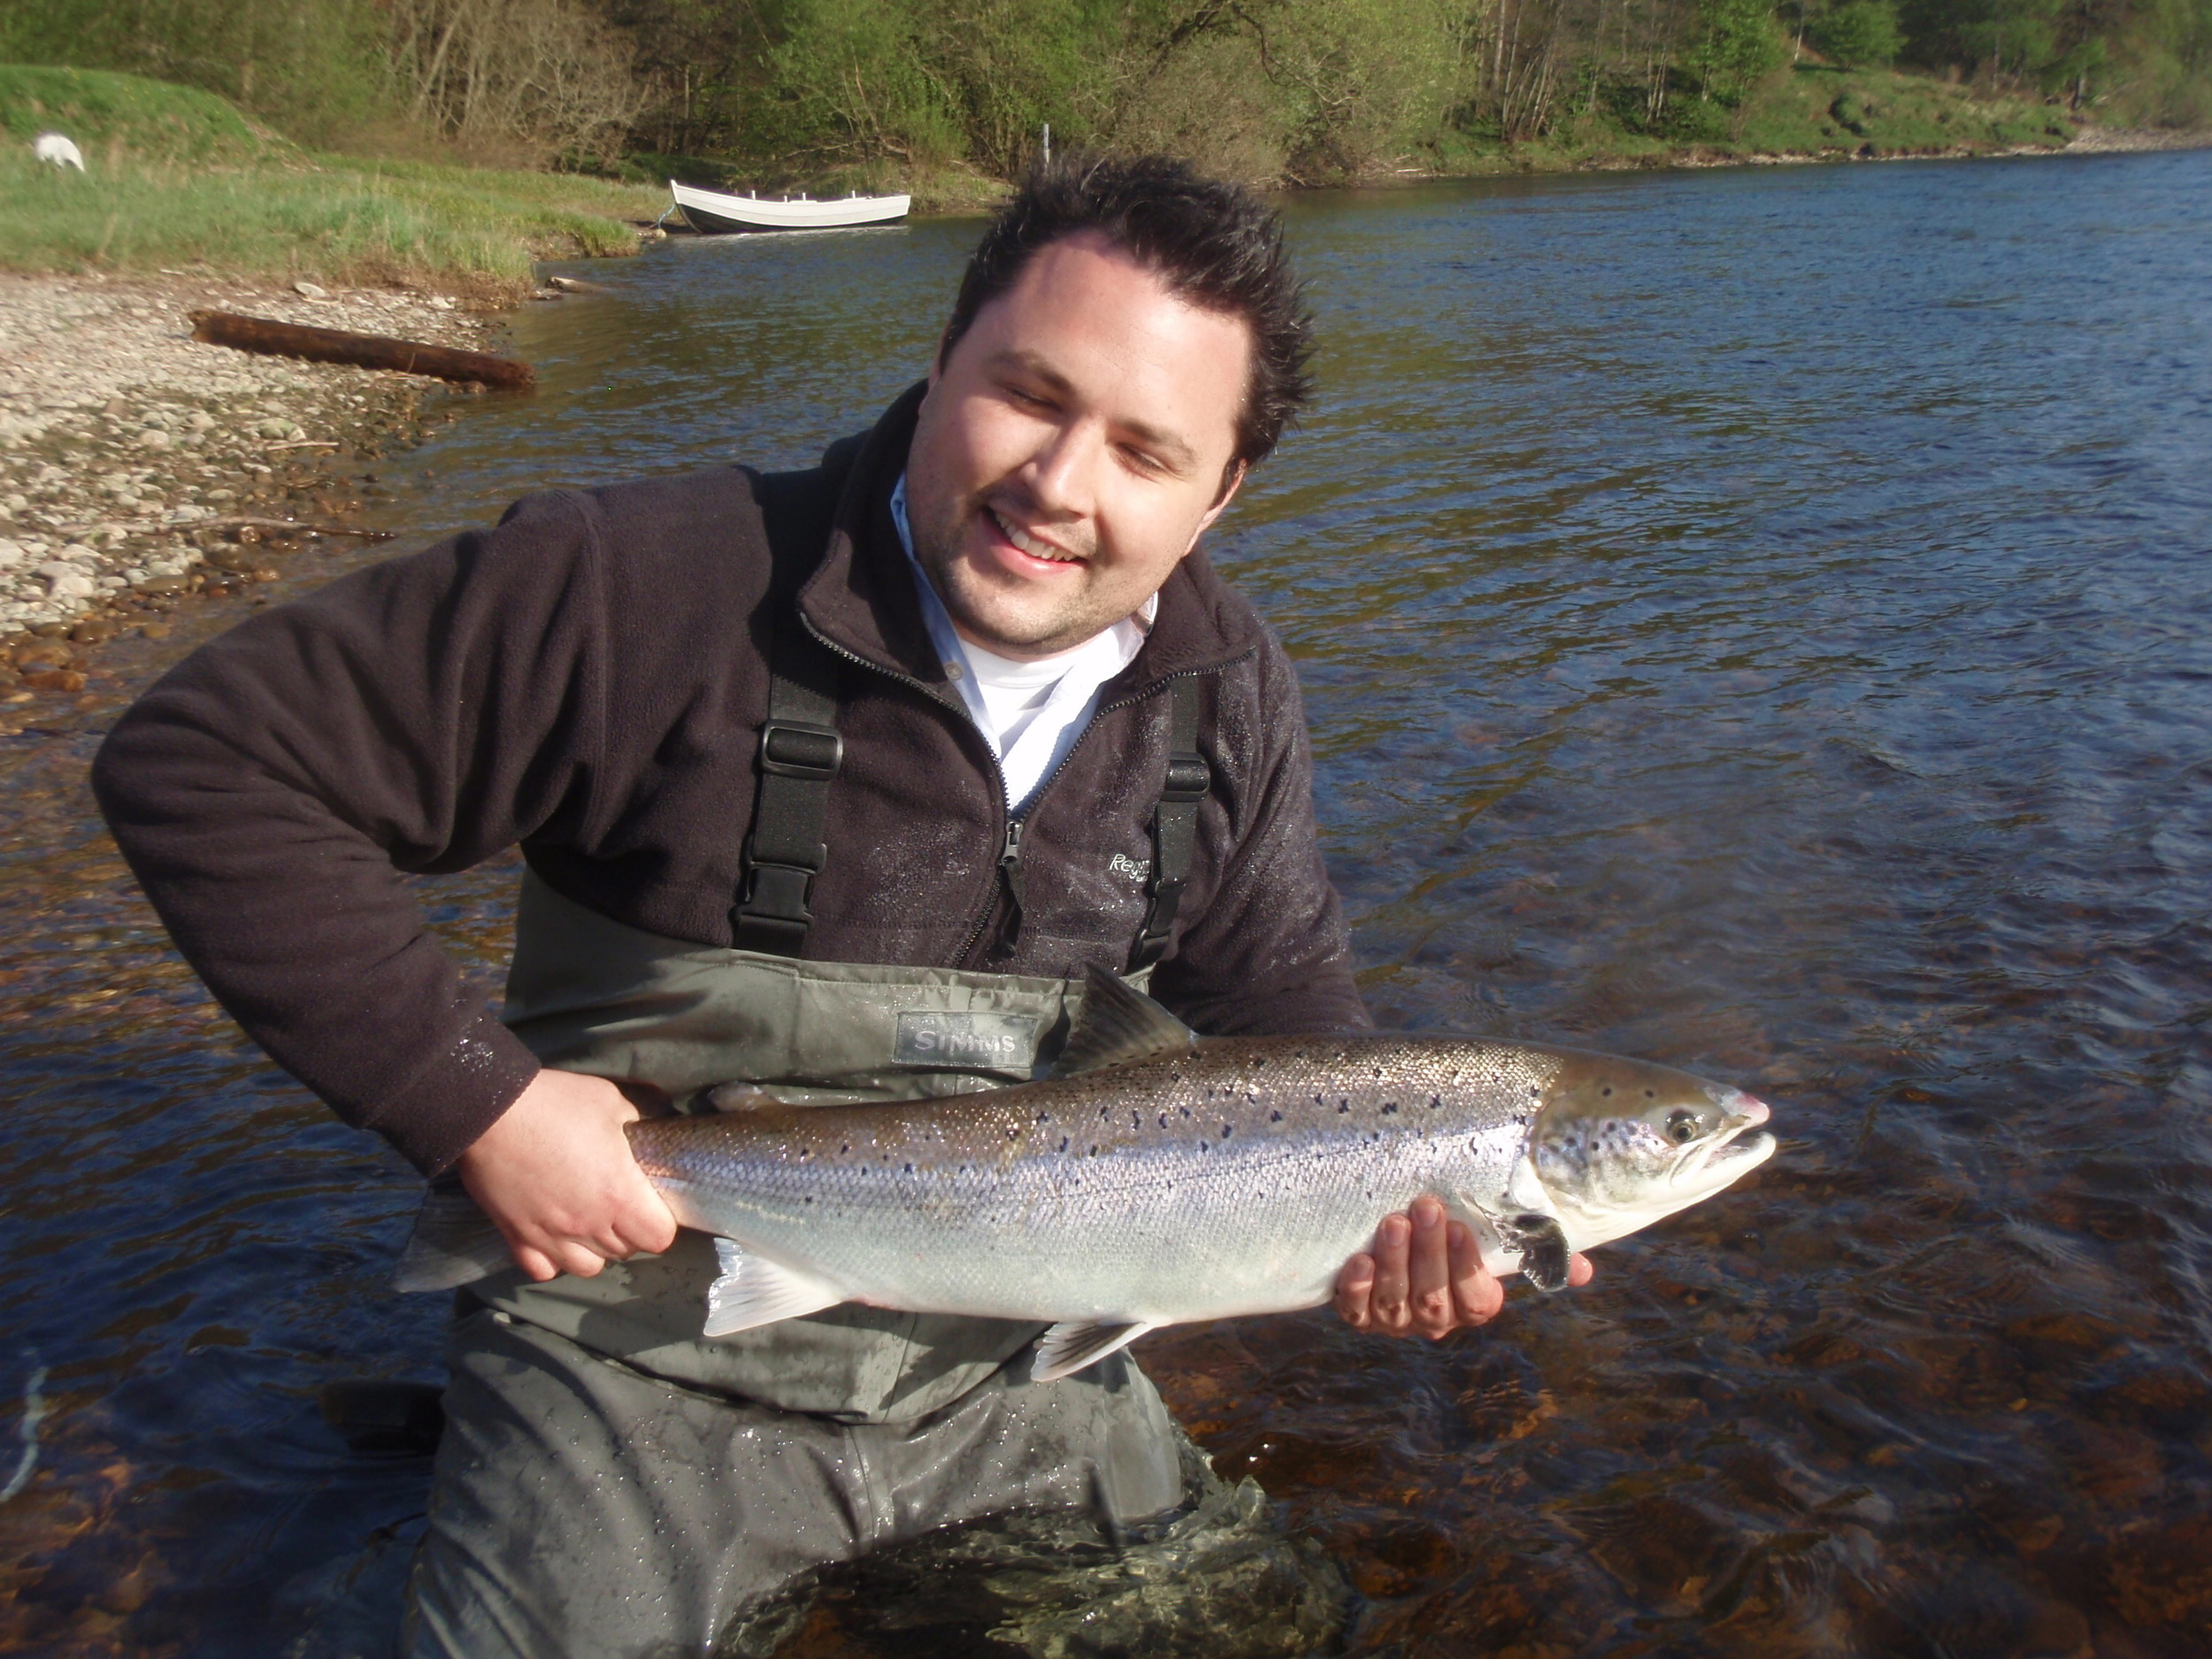 tay salmon, fish tay, tay ghillie, salmon fishing, scottish wild salmon, atlanitc salmon, corporate fishing days, springer salmon, fly fishing, fish scotland, fishing uk, guided fishing trips,.jpeg